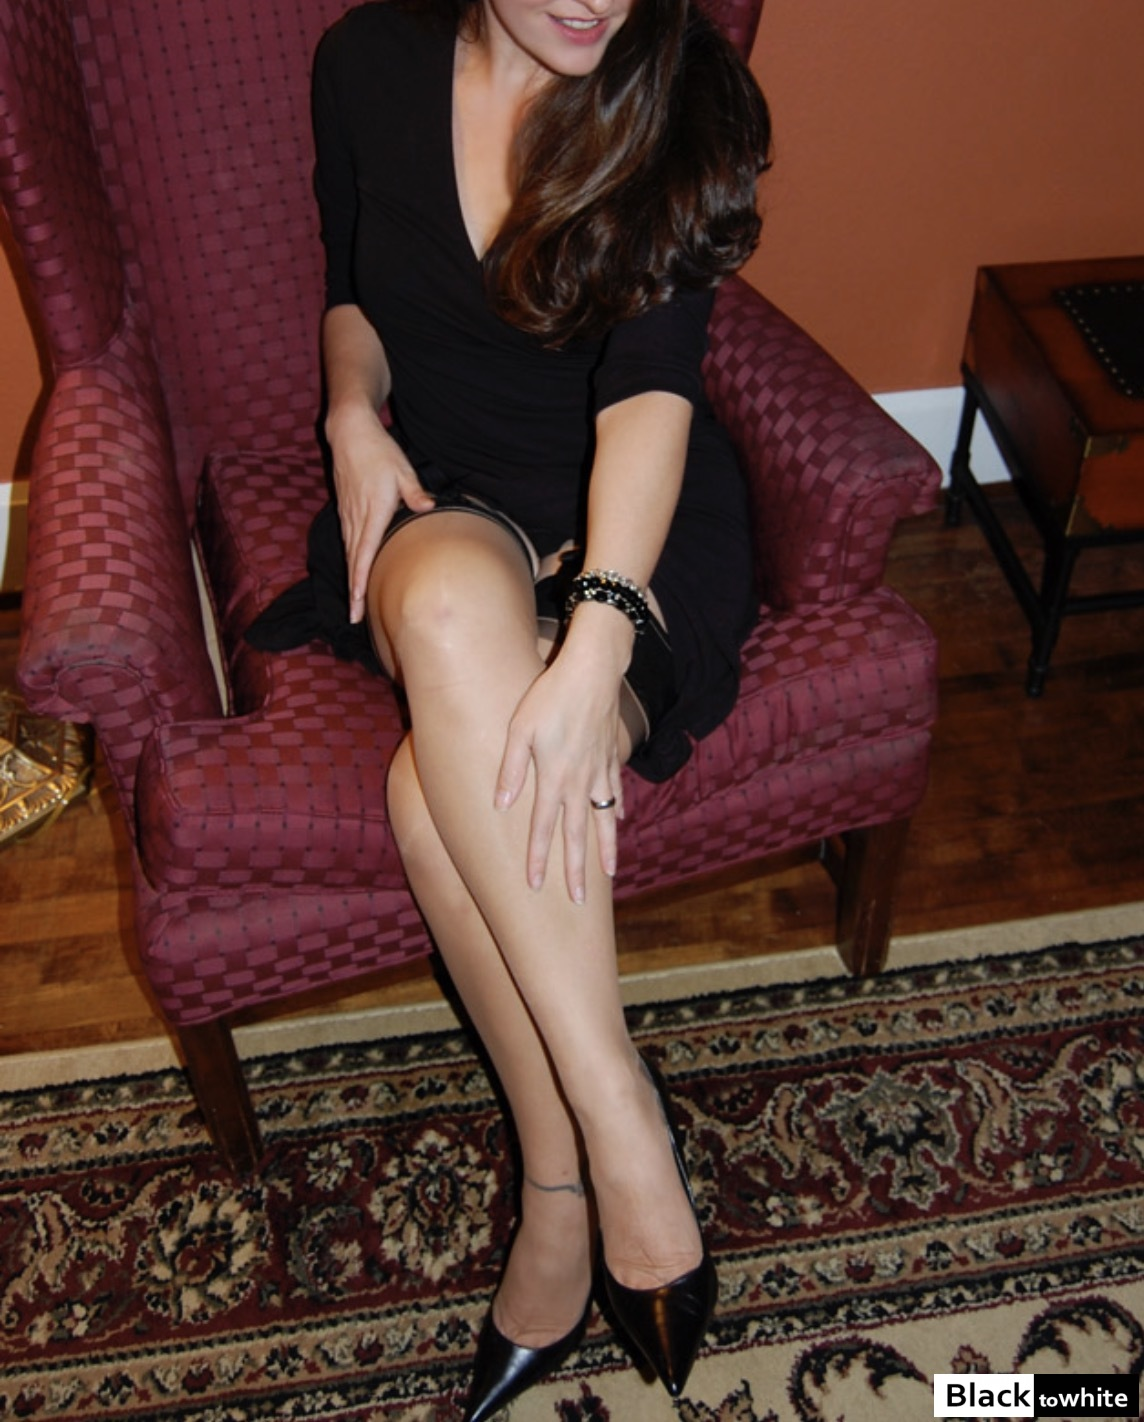 another date night    amateur interracial community - cuckold